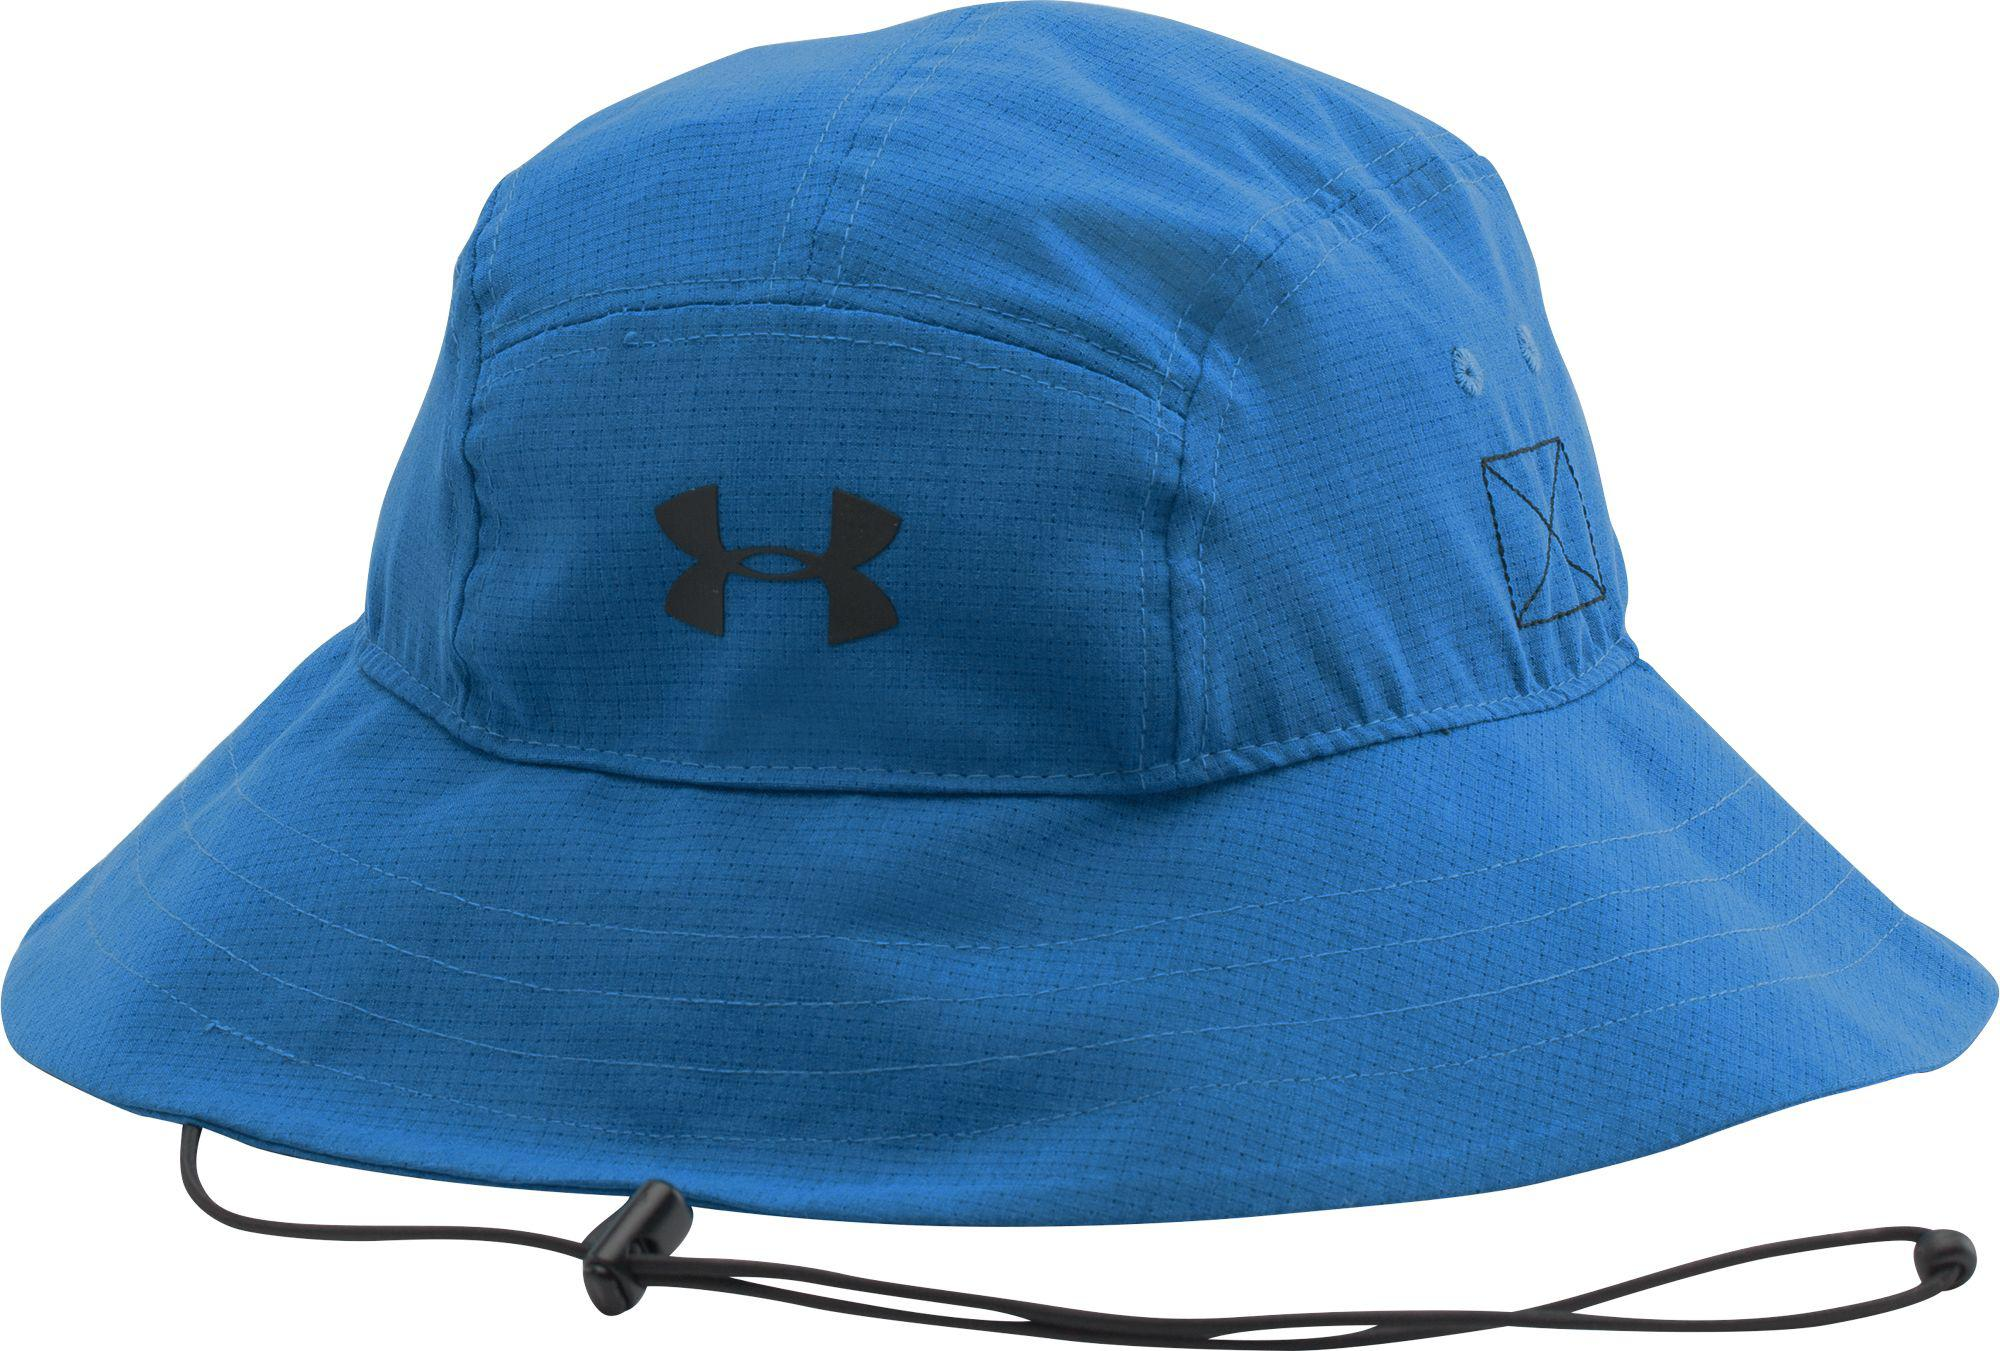 3a88de8f577f1 Lyst - Under Armour Airvent Bucket Hat in Blue for Men